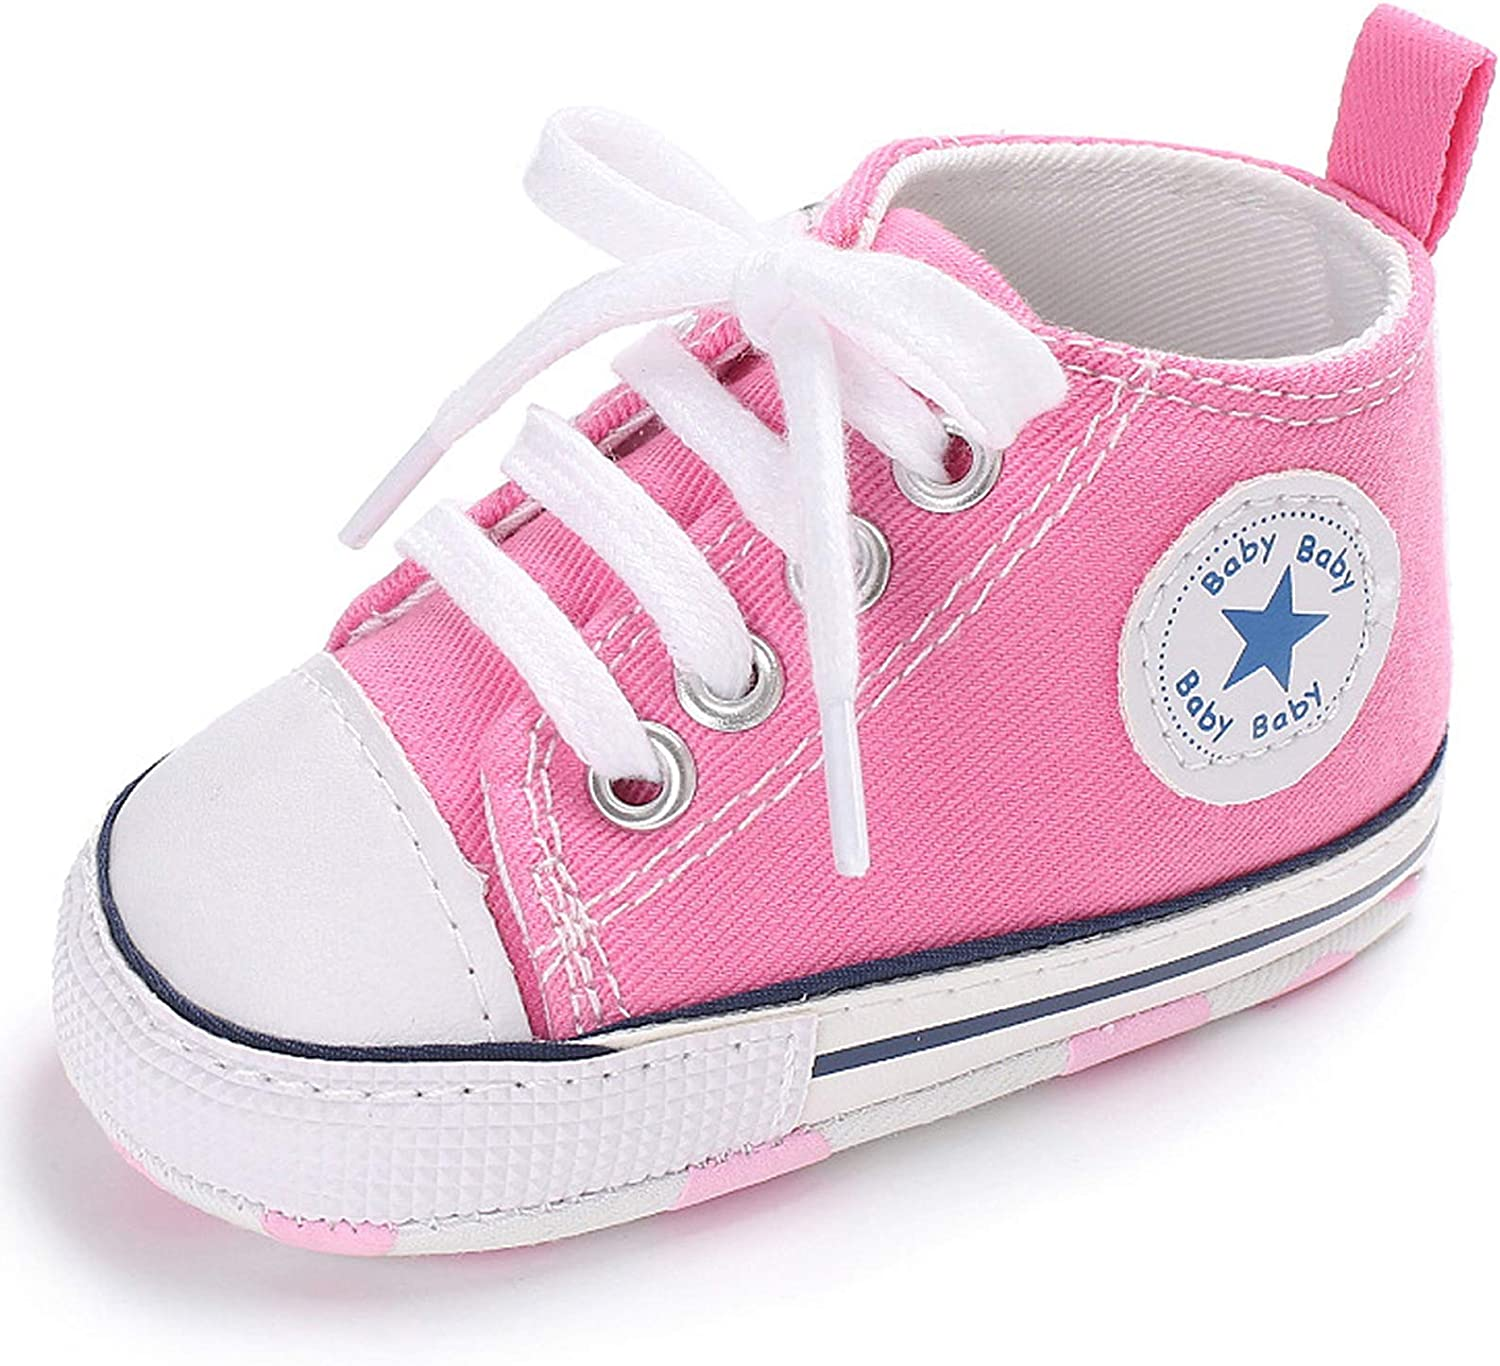 | Antheron Baby Girls Boys Canvas Shoes Soft Sole Toddler First Walker Infant High-Top Ankle Sneakers Newborn Crib Shoes | Sneakers